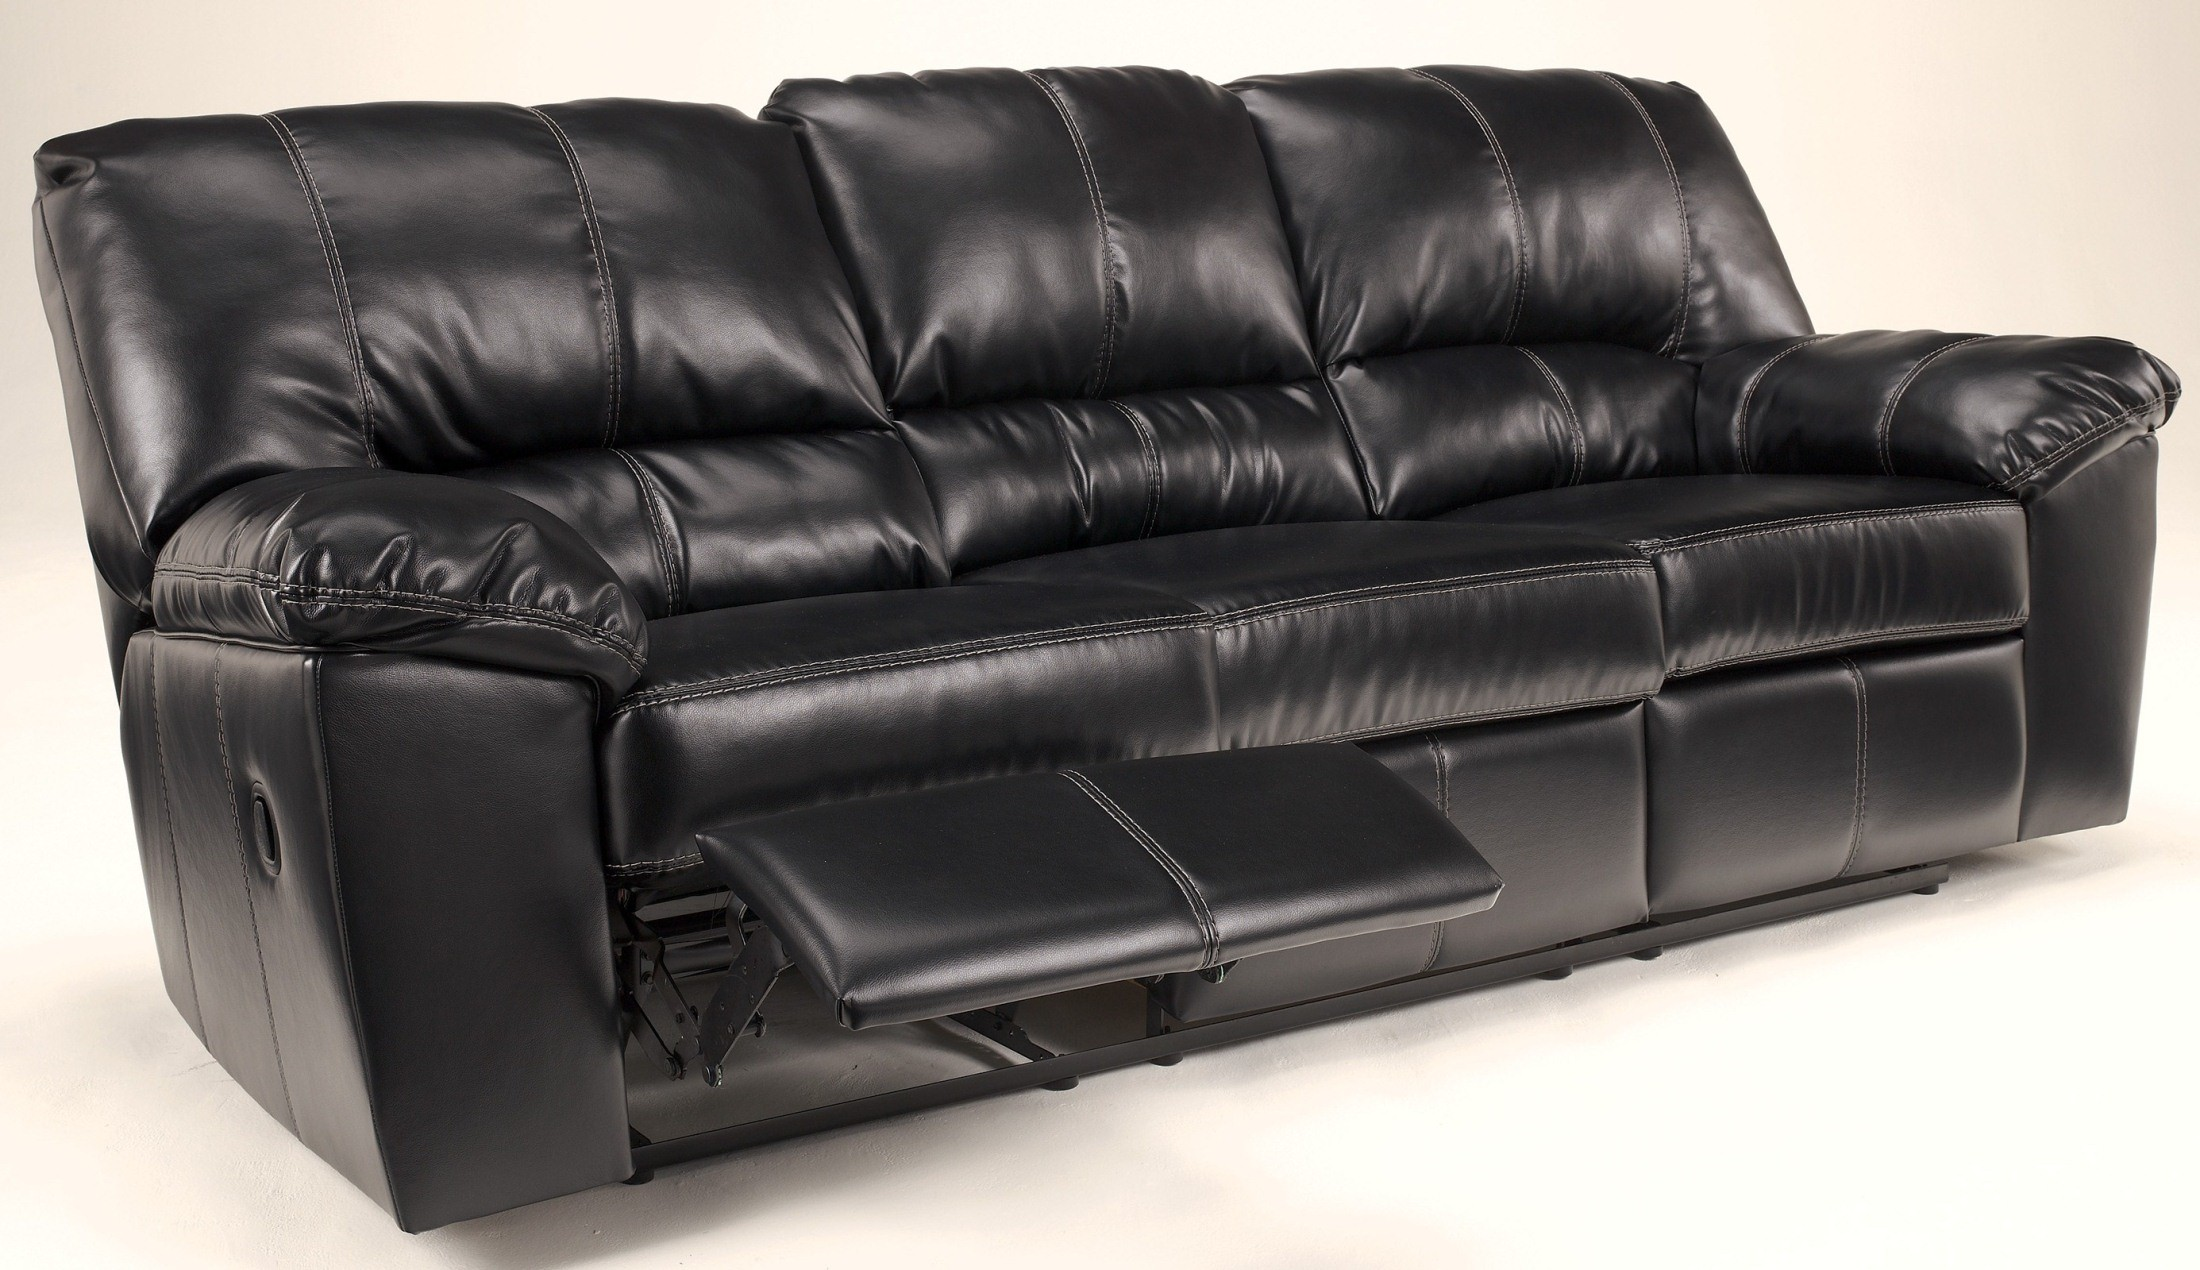 durablend sofa reupholstery bangalore black reclining 4540088 ashley furniture